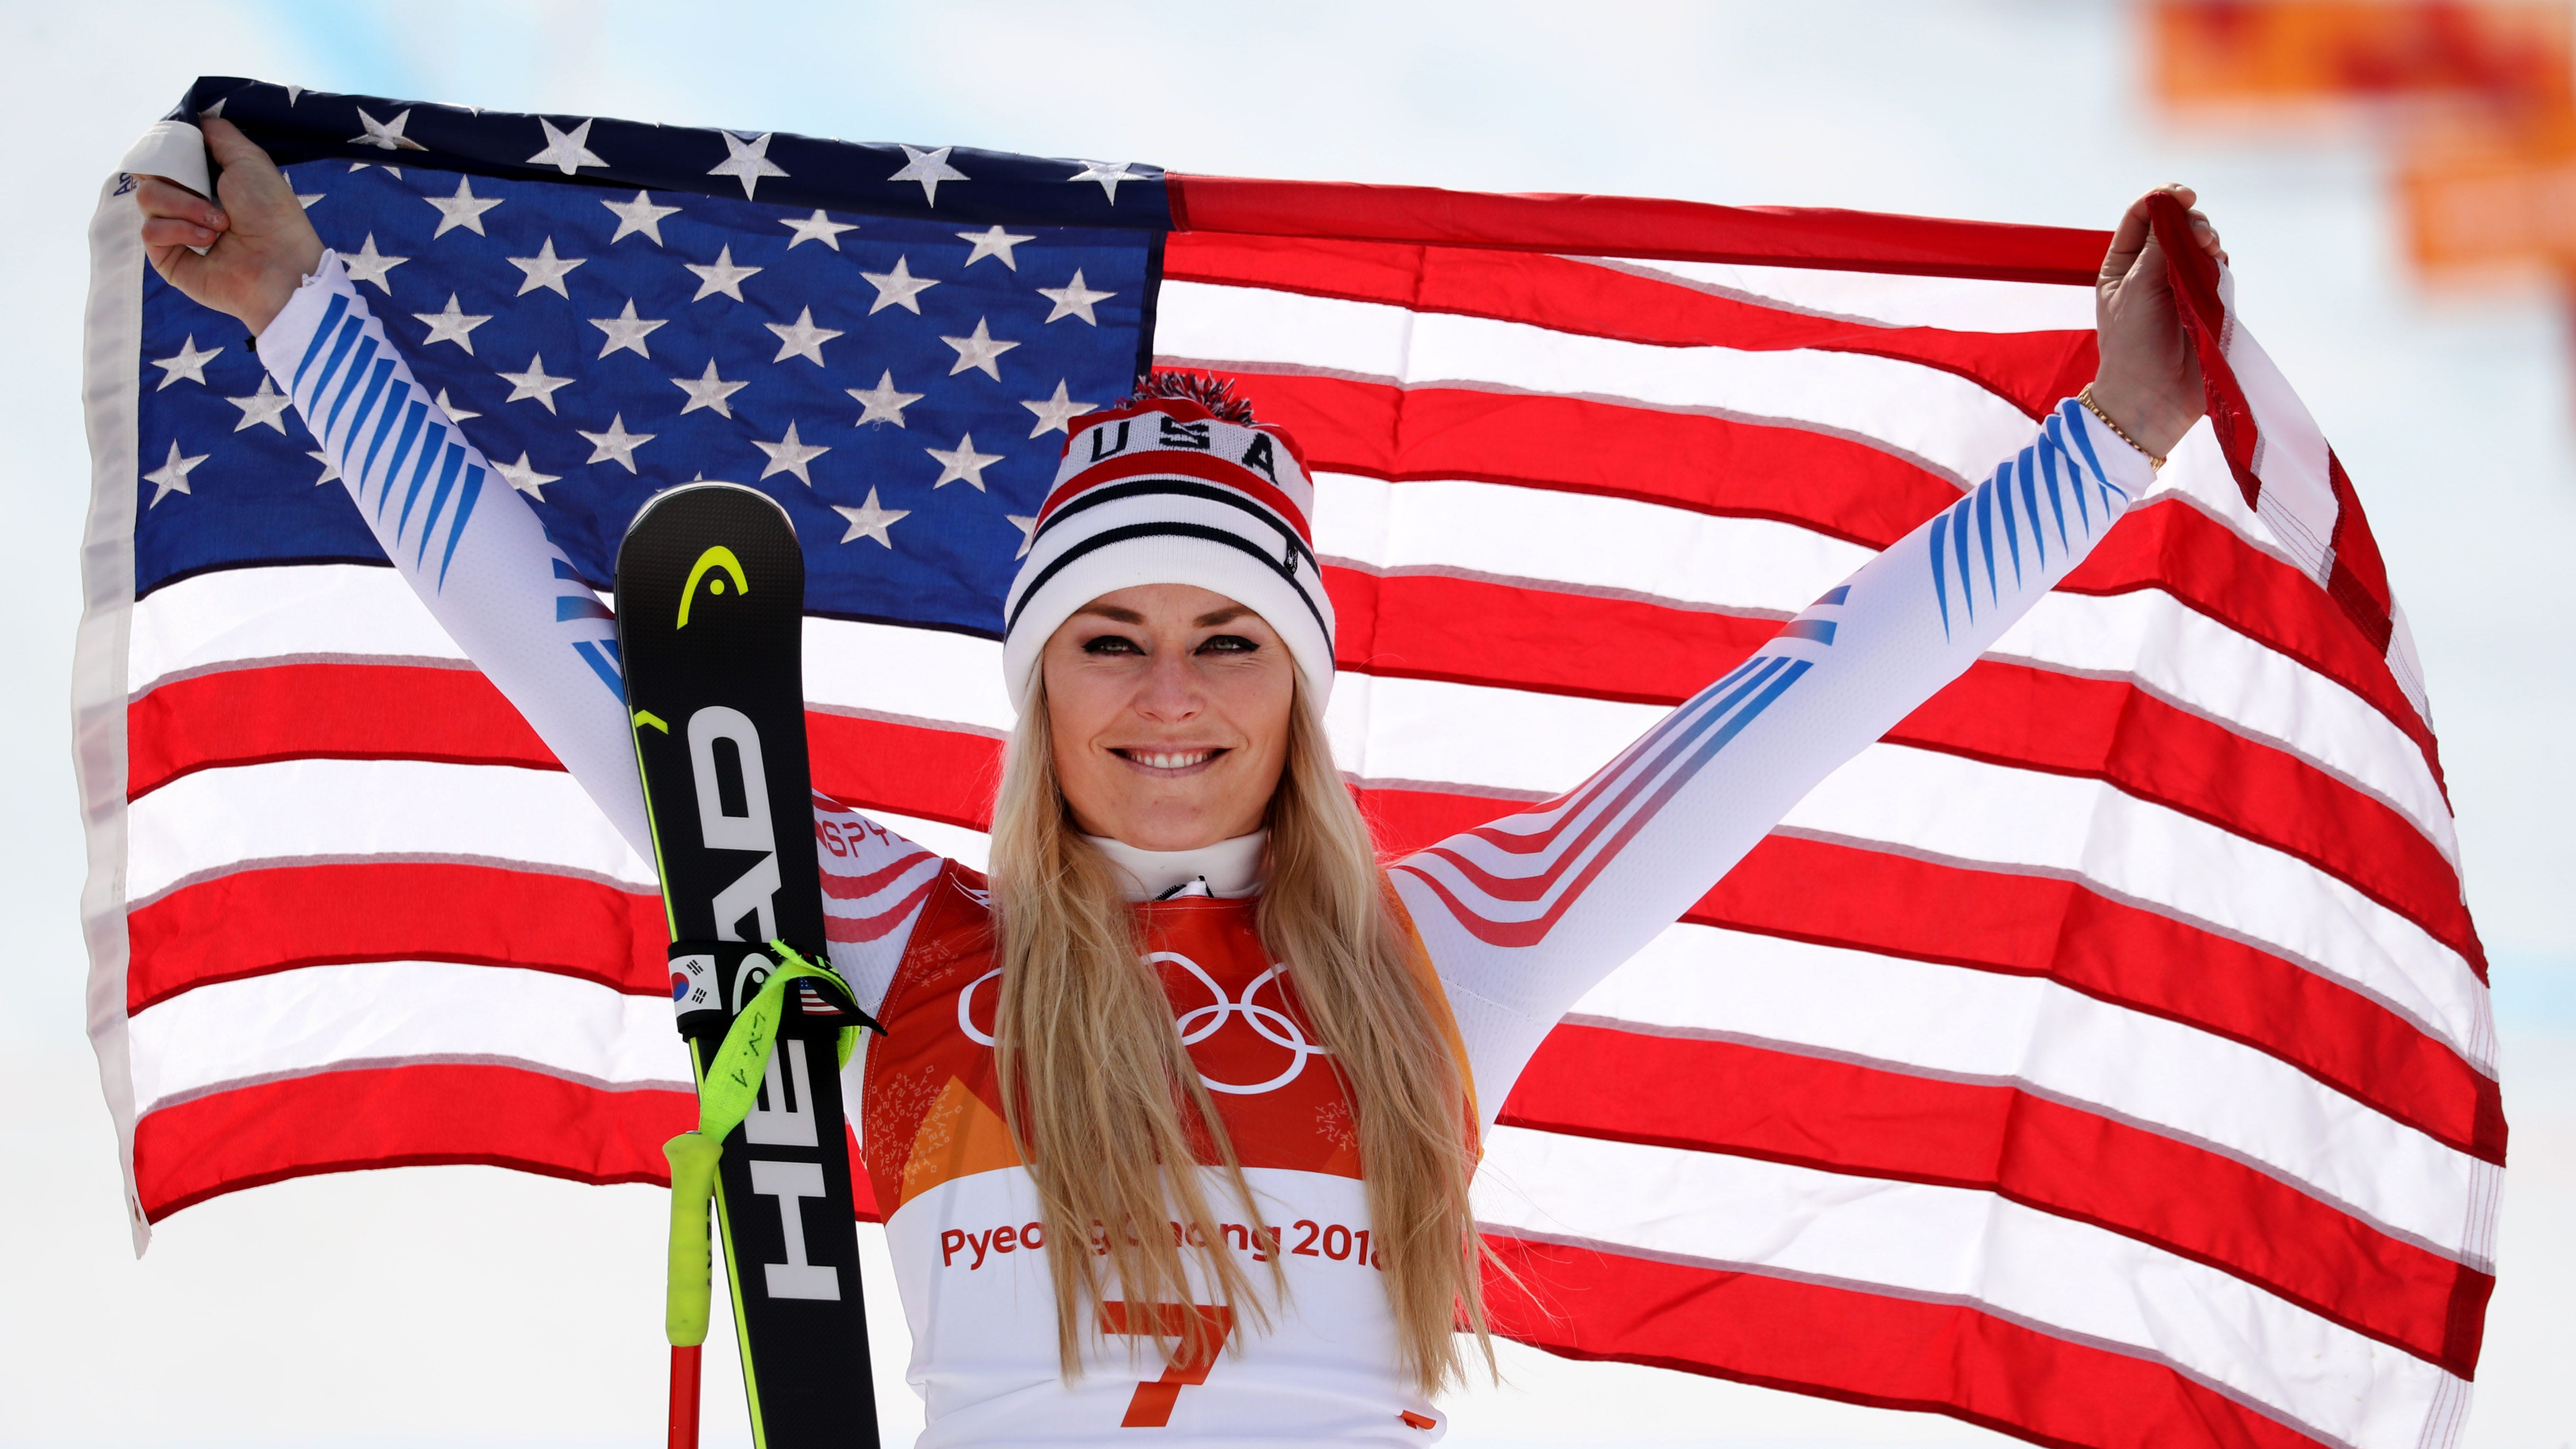 Lindsey Vonn (USA) celebrates winning the bronze medal in the downhill during the Pyeongchang 2018 Olympic Winter Games at Jeongseon Alpine Centre.